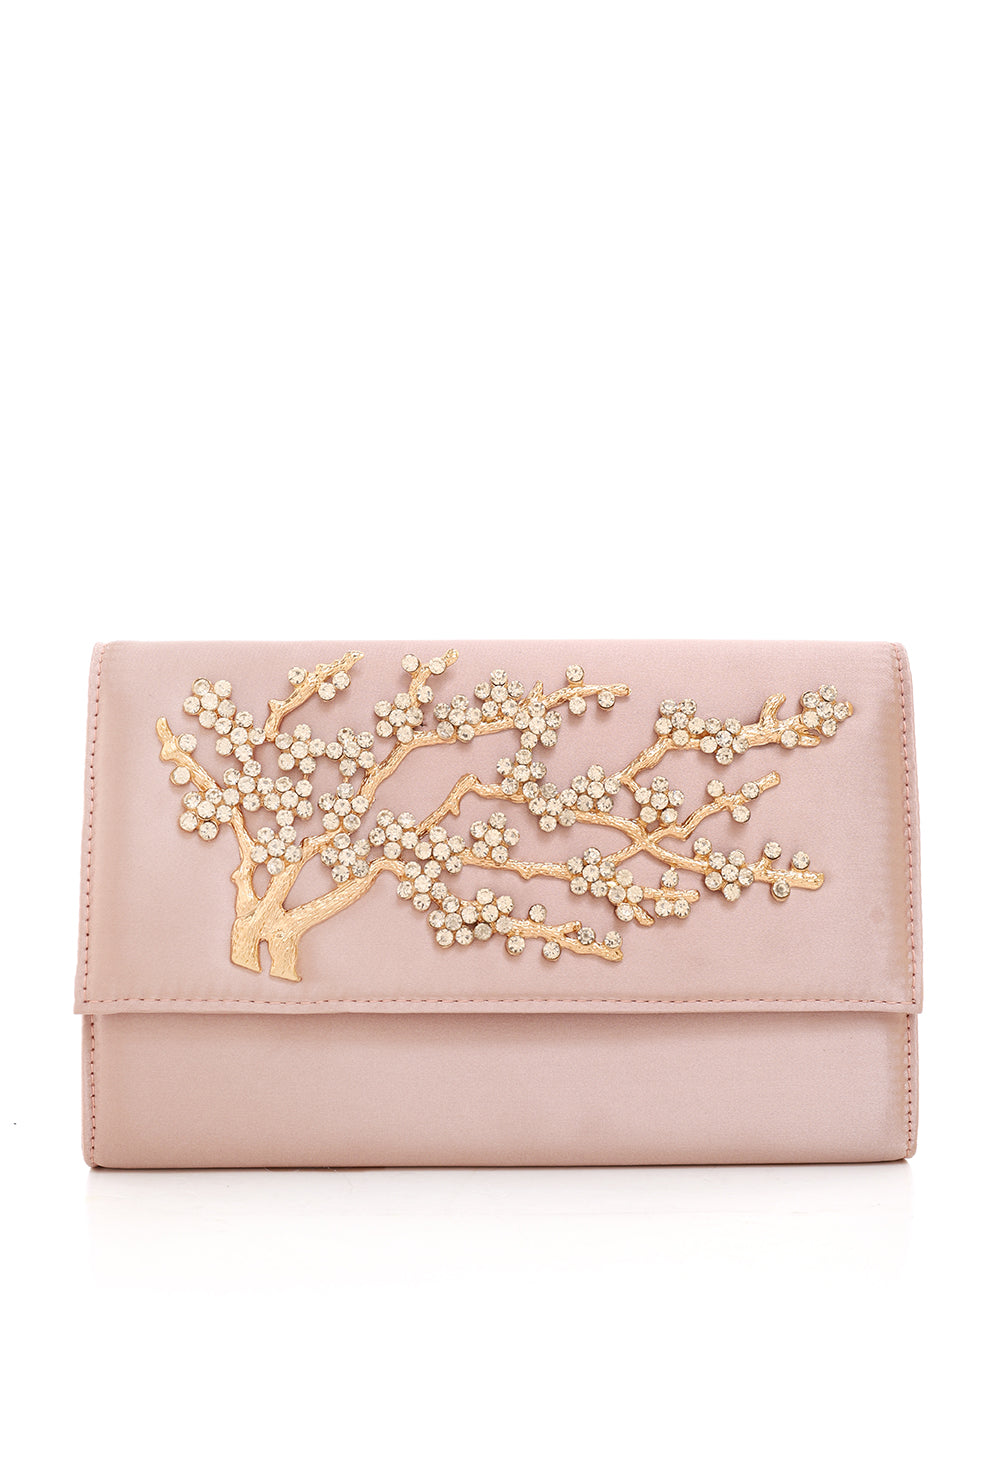 CHERRY BLOSSOM CLUTCH-PINK